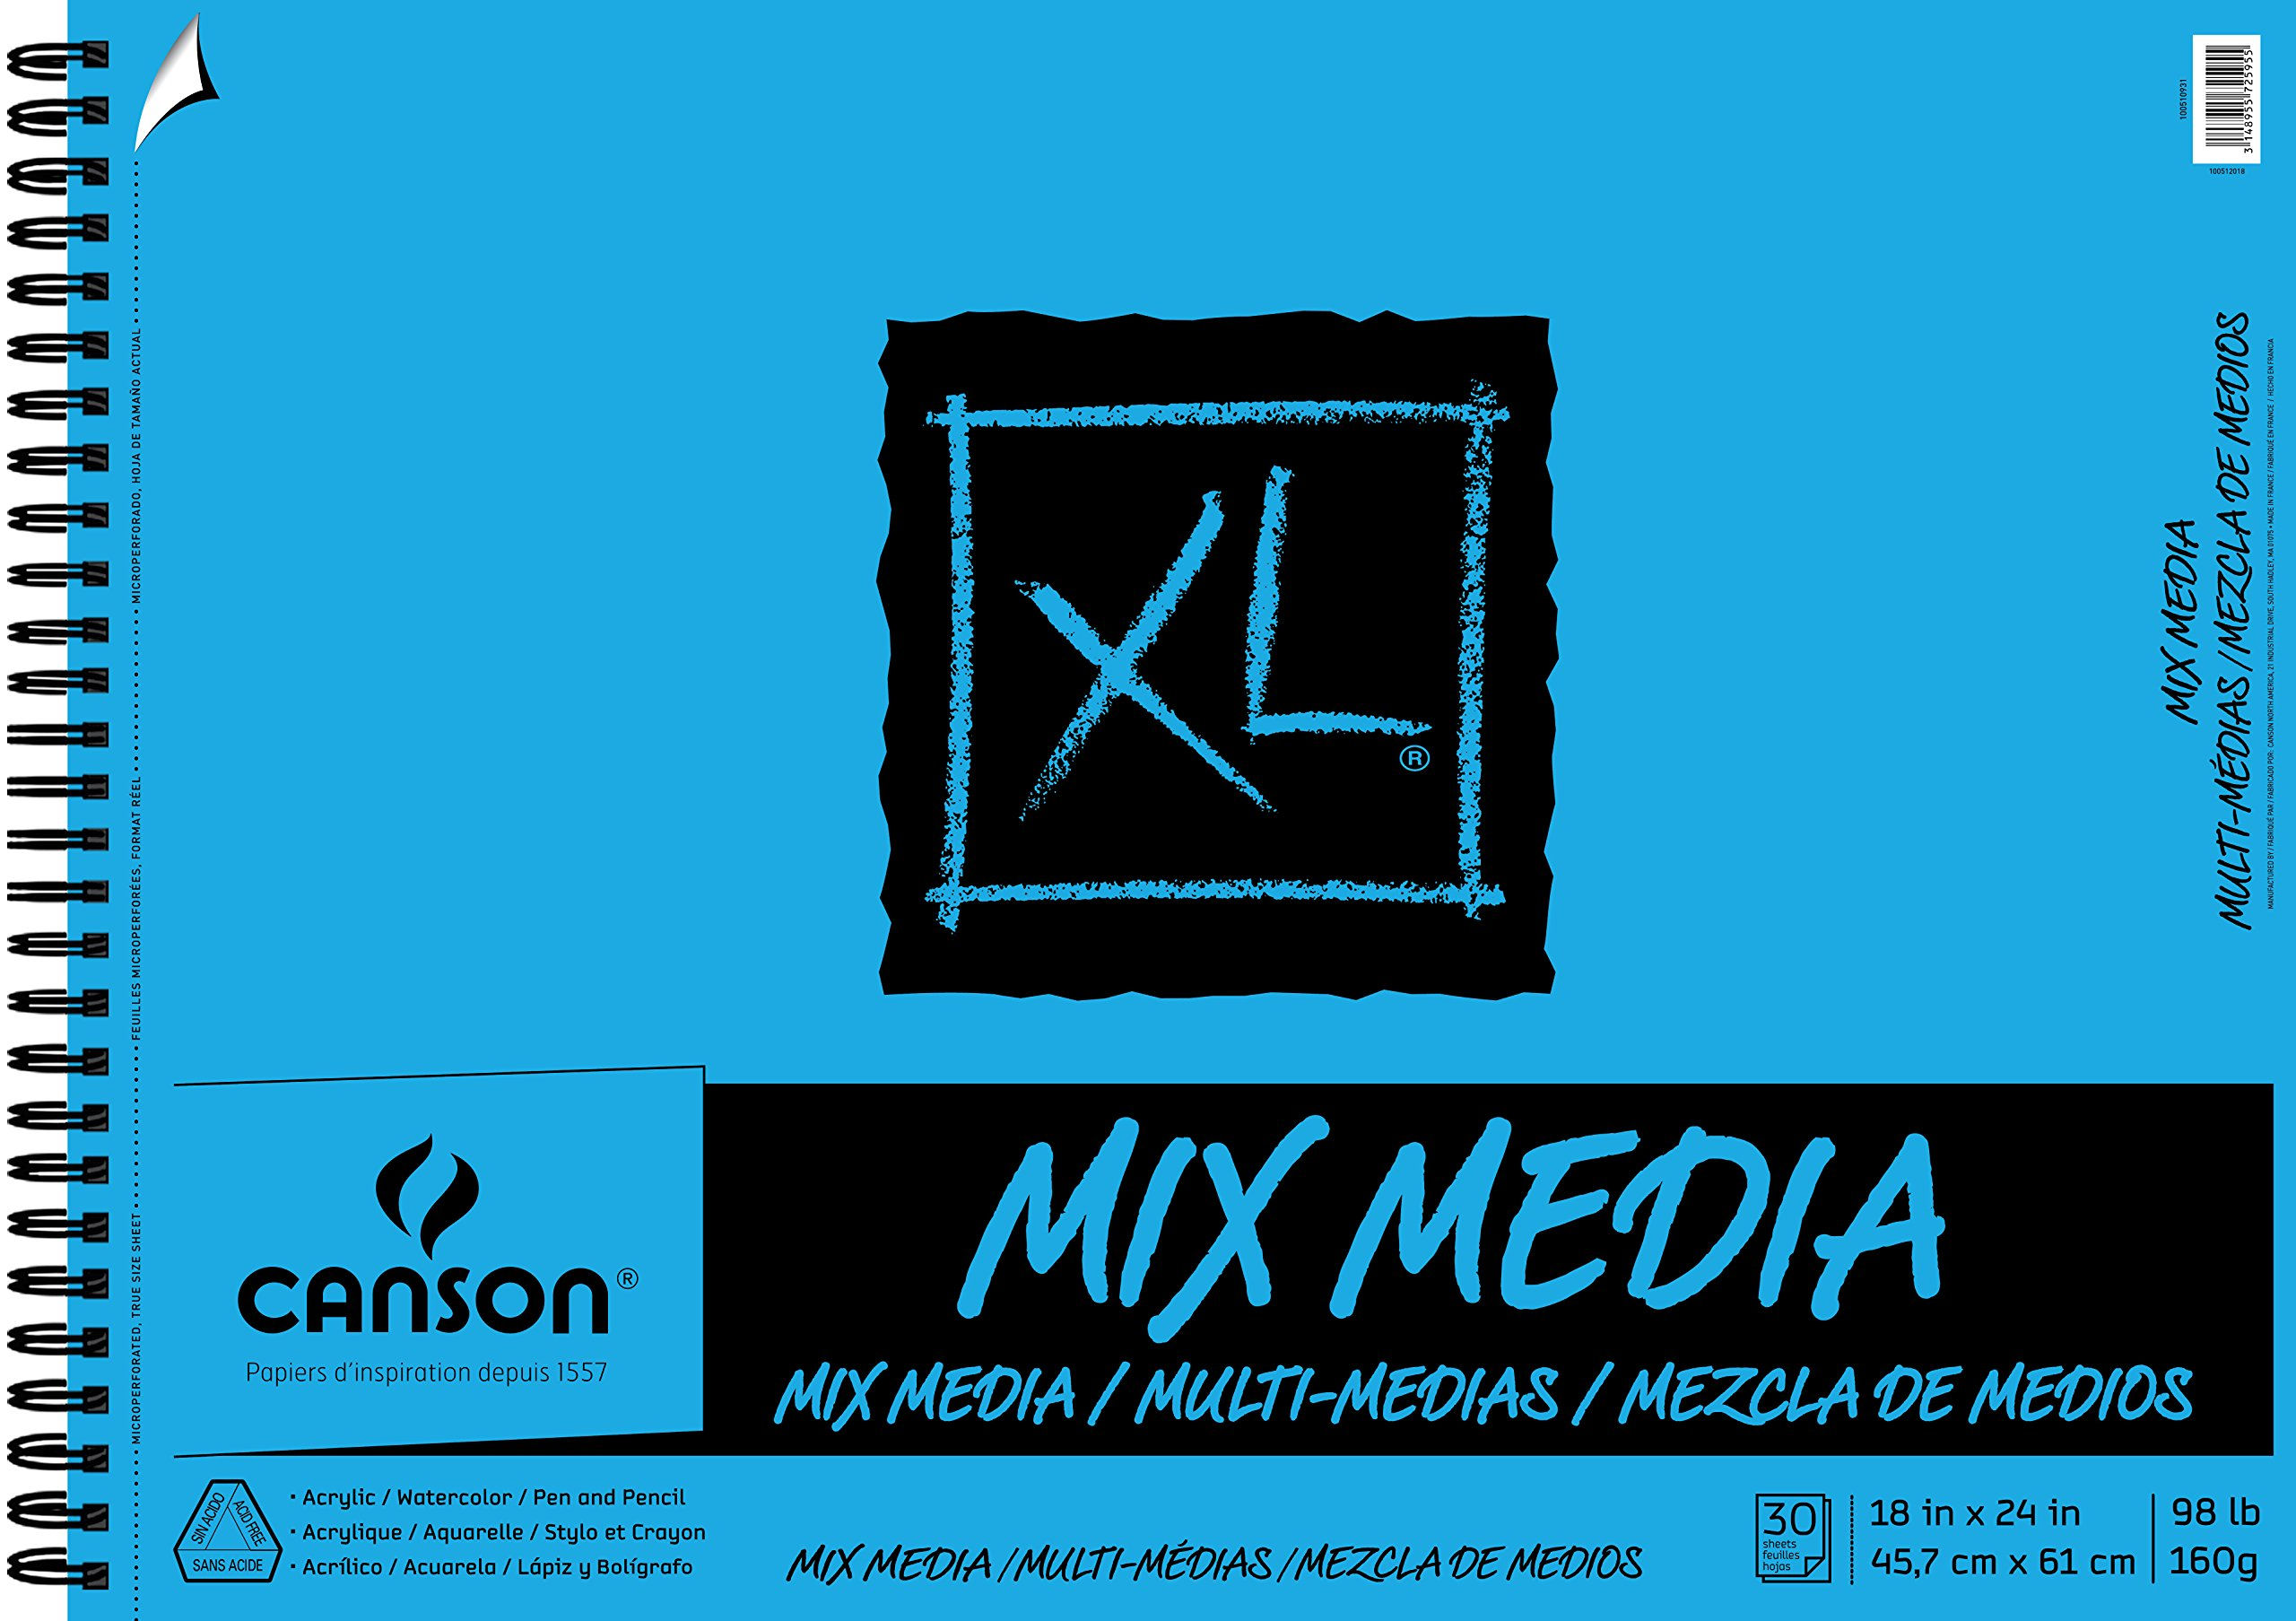 Canson XL Series Mix Media Paper Pad, Heavyweight, Fine Texture, Heavy Sizing for Wet and Dry Media, Side Wire Bound, 98 Pound, 18 x 24 In, 30 Sheets by Canson